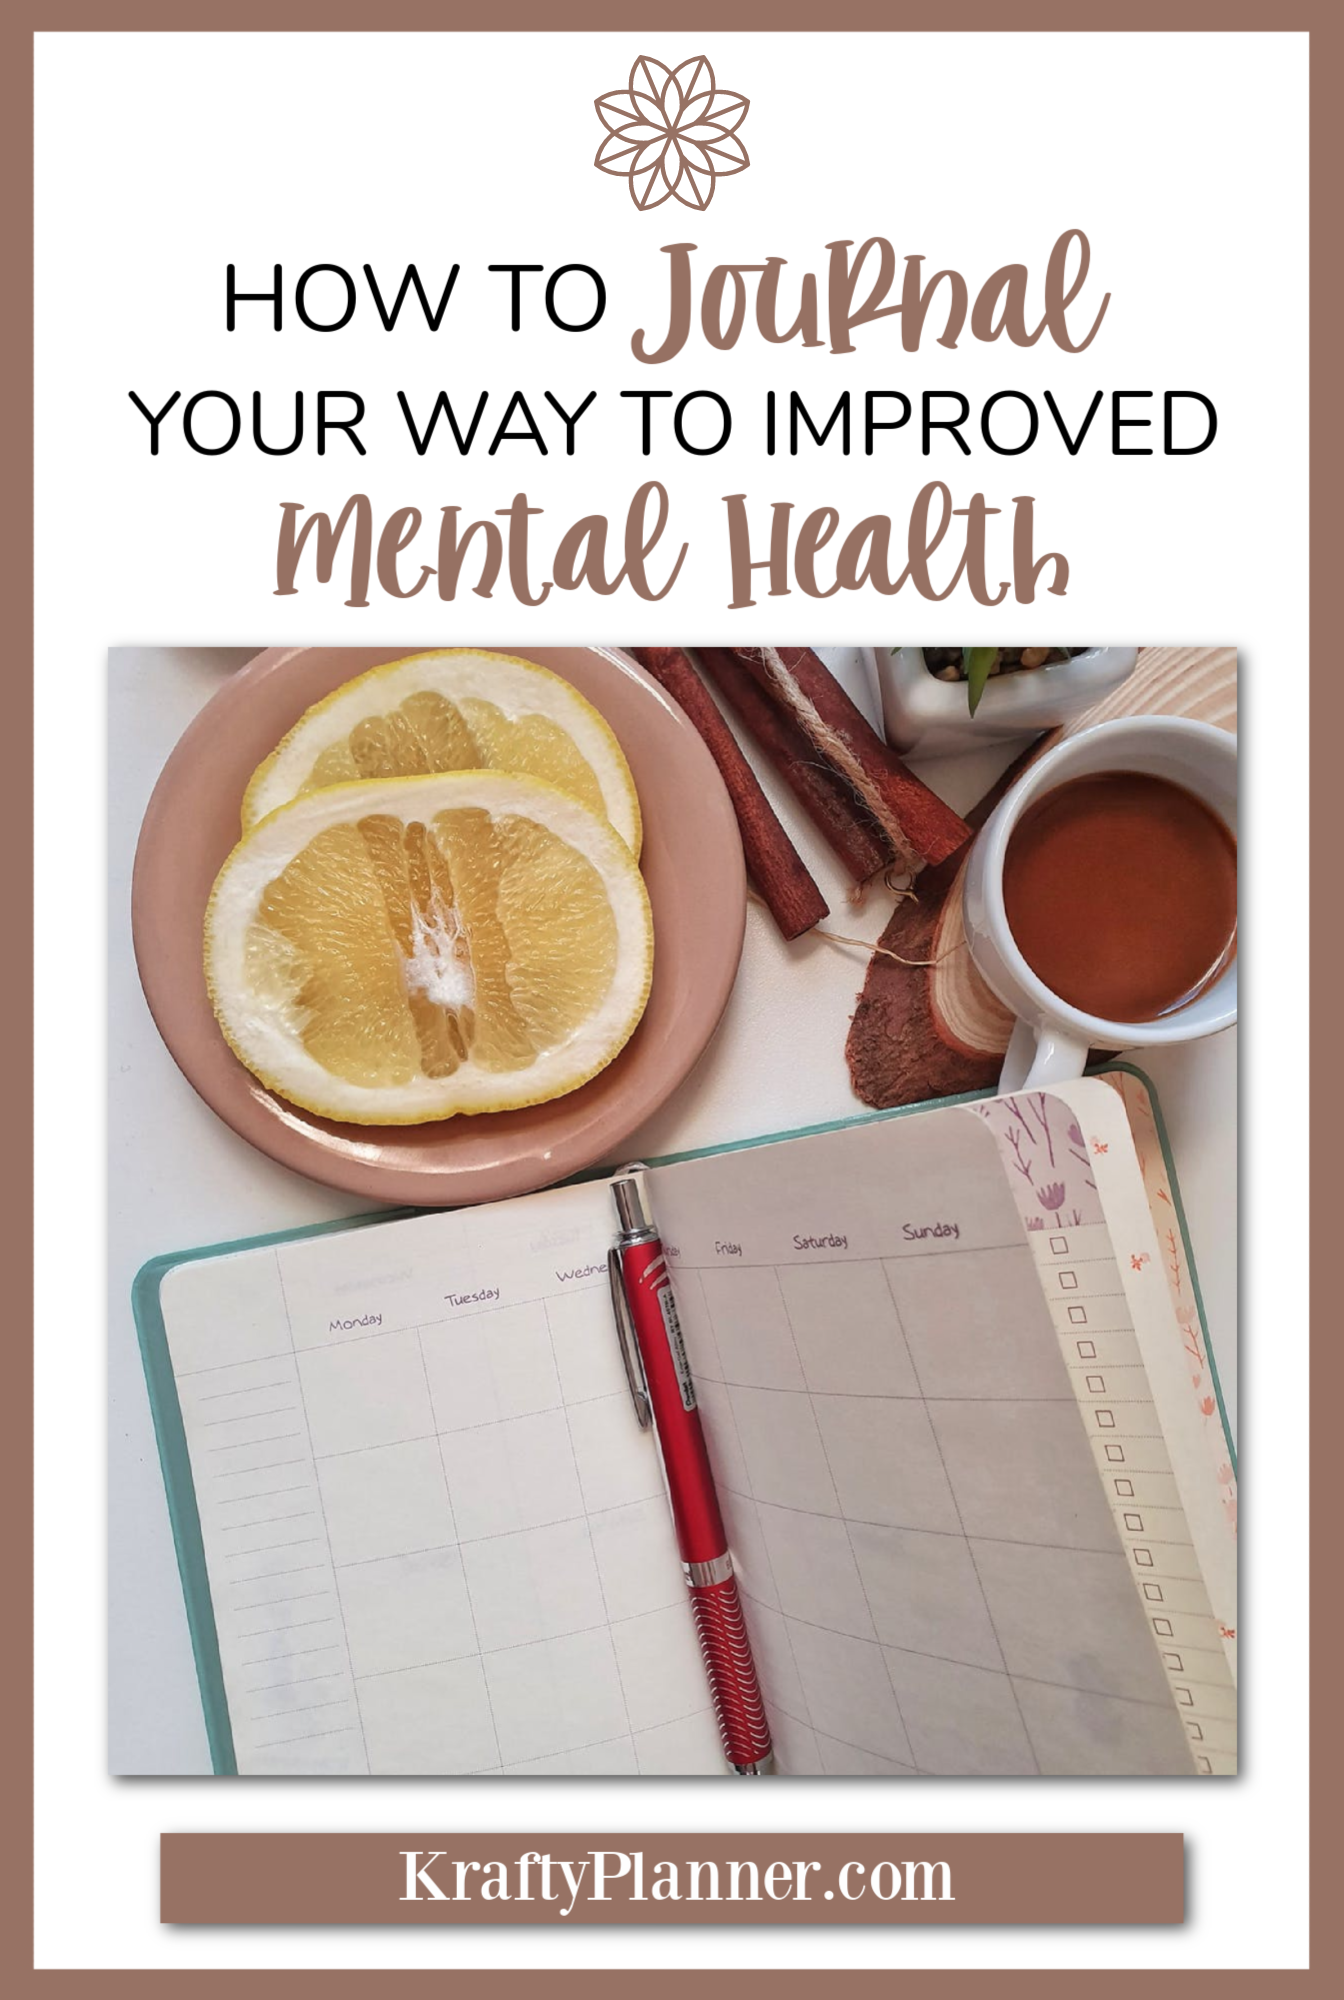 How to Journal Your Way to Improved Mental Health PIN 2.png